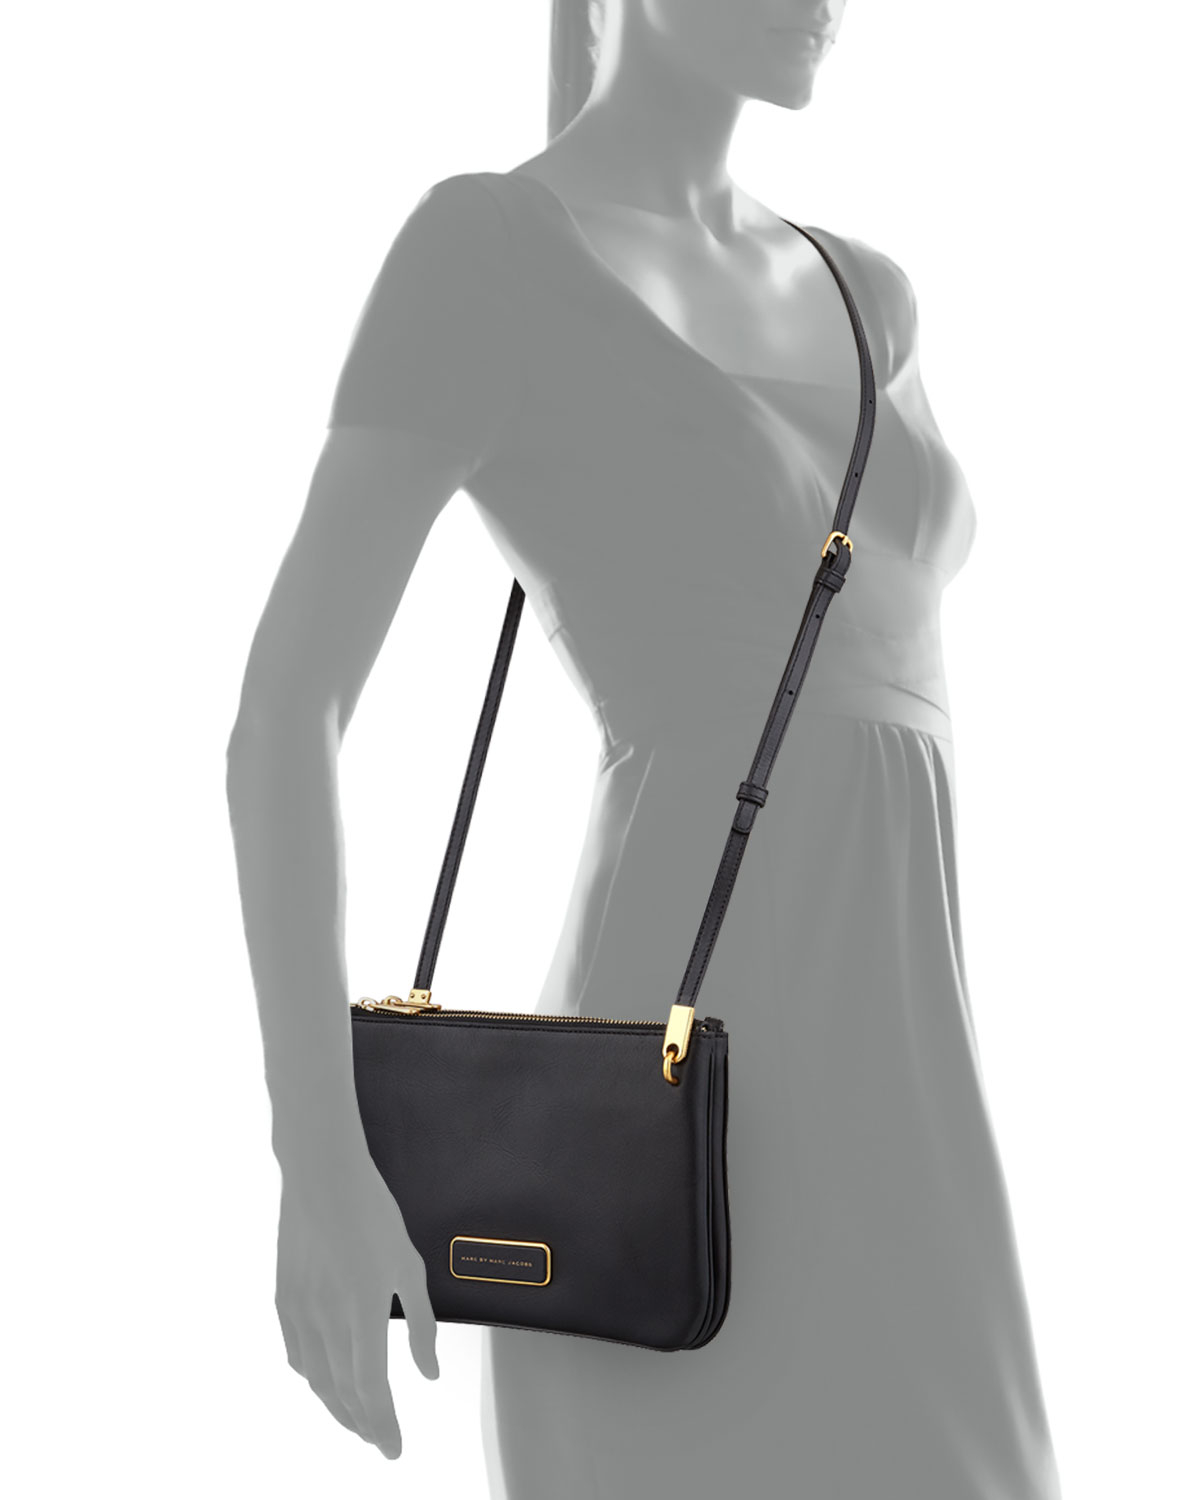 Marc by marc jacobs Ligero Double Percy Crossbody Bag in Black | Lyst